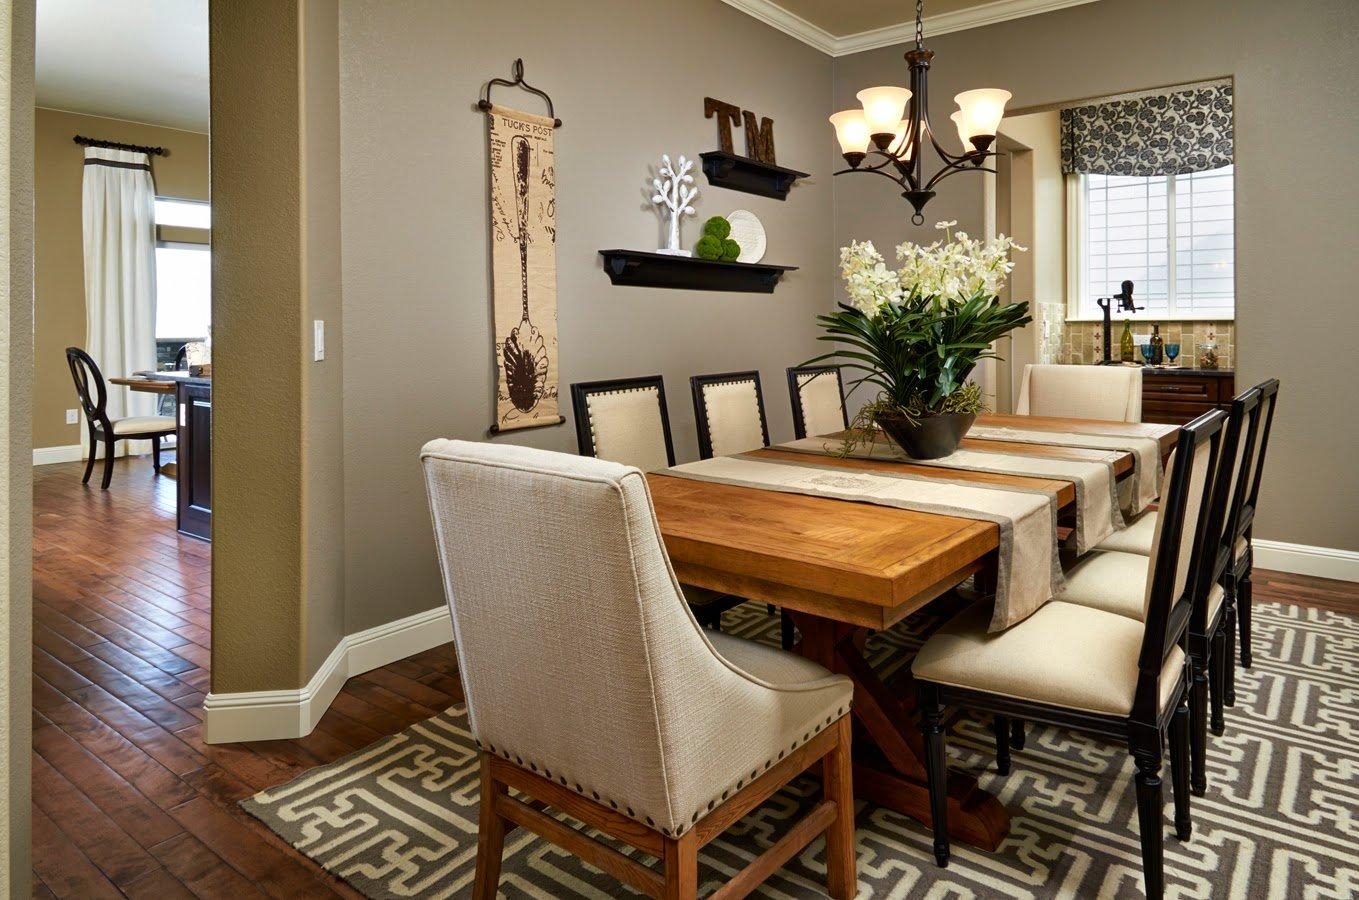 Formal Dining Room Table Setting Ideas Homes Design Inspiration Within Formal Dining Room Wall Art (View 7 of 20)